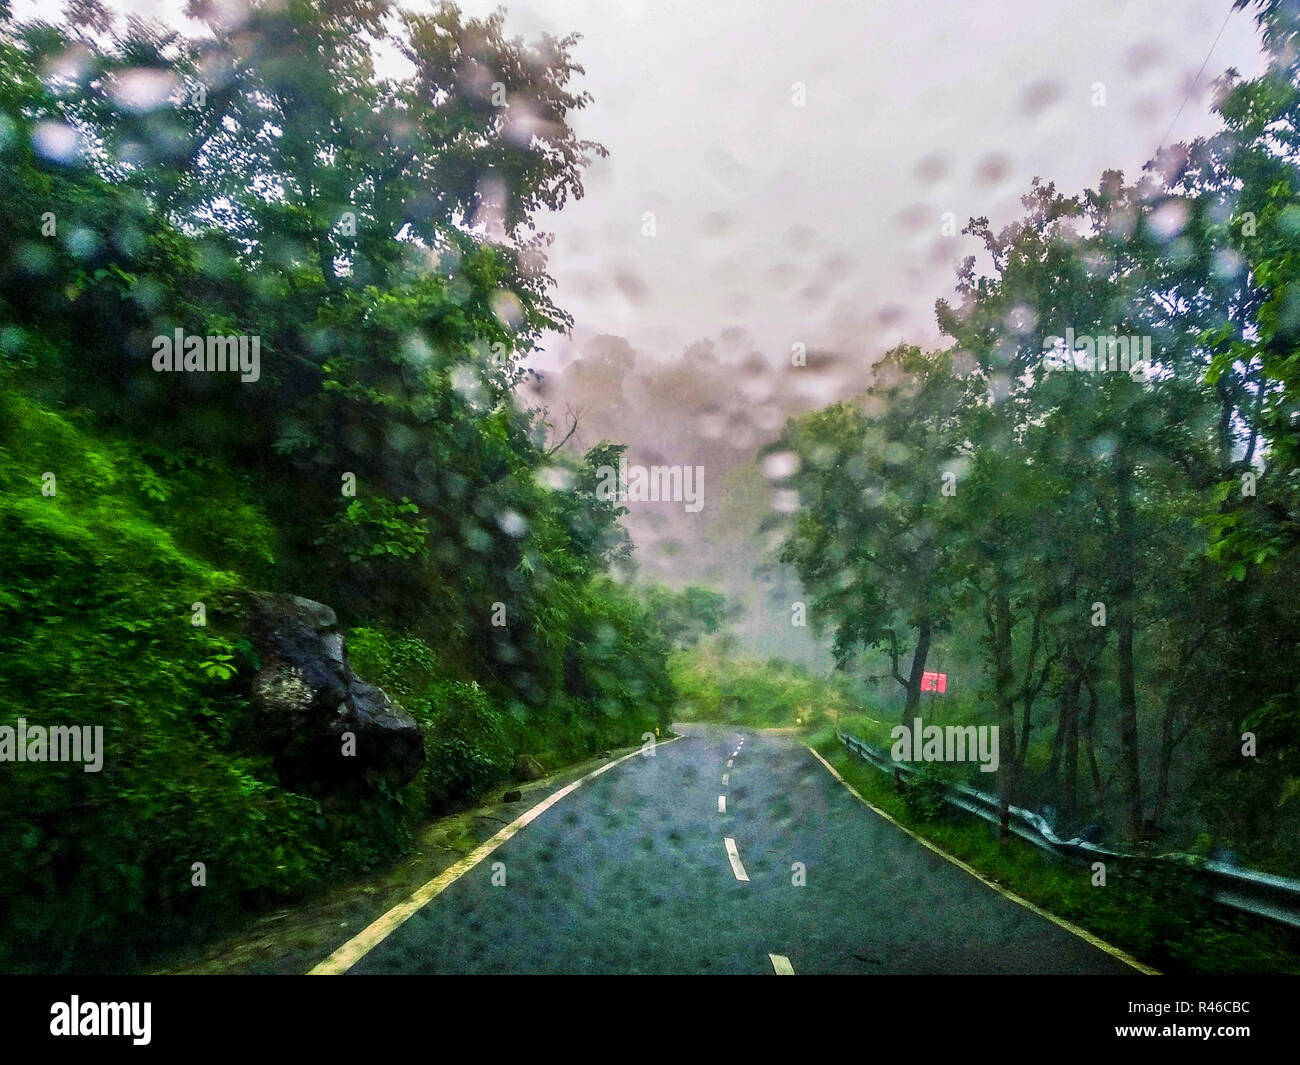 driving in the rain - Stock Image